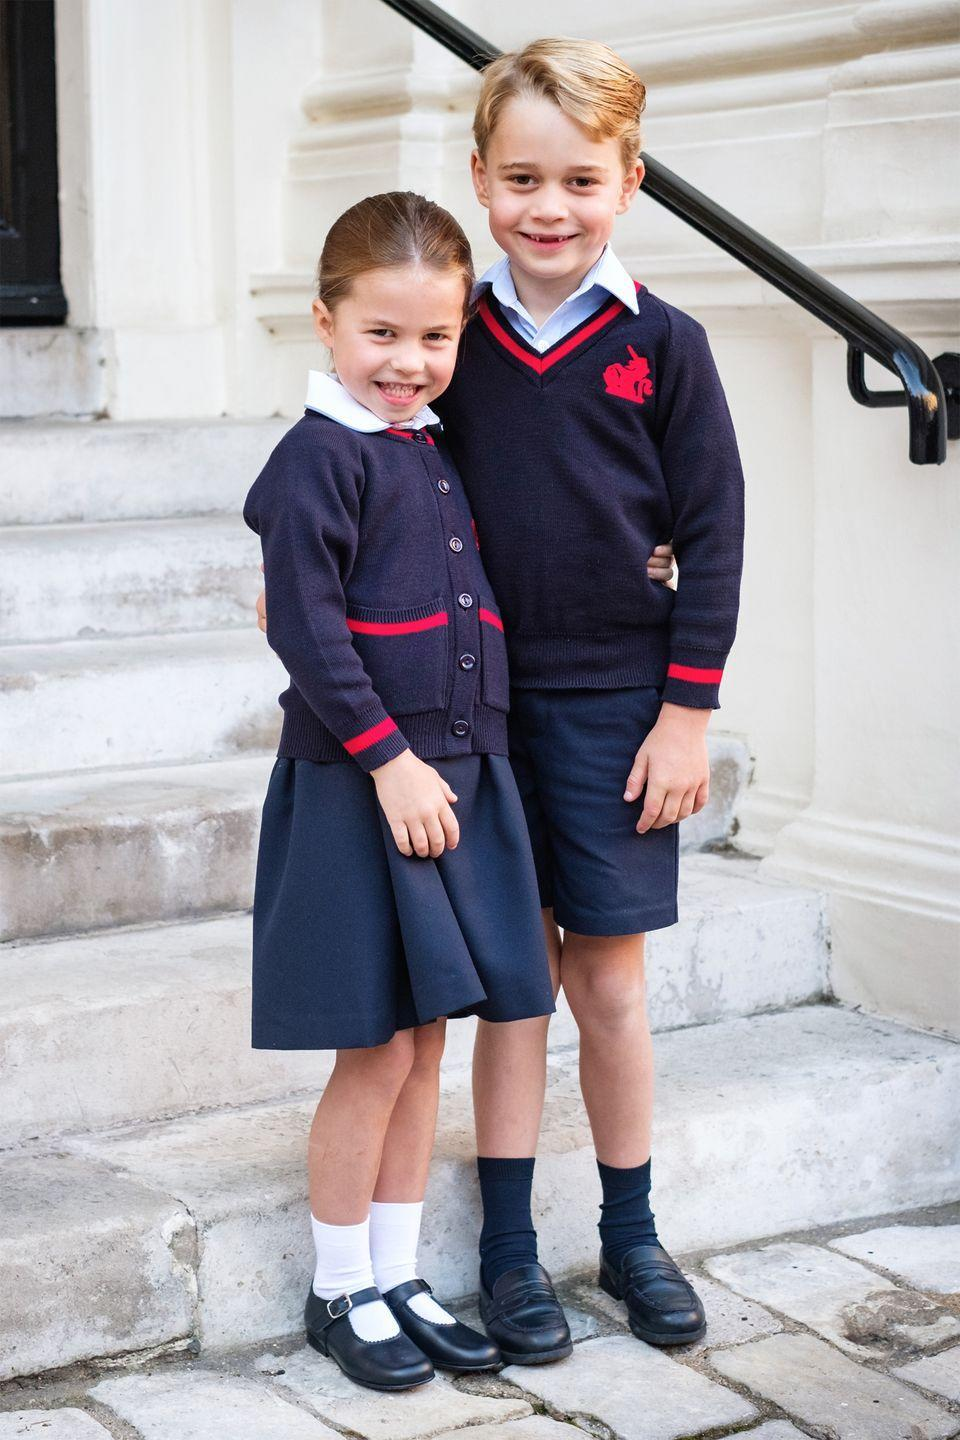 "<p>Prince George and Princess Charlotte smile for a sweet <a href=""https://www.harpersbazaar.com/celebrity/latest/a28925833/prince-george-princess-charlotte-school-portrait-2019/"" rel=""nofollow noopener"" target=""_blank"" data-ylk=""slk:school portrait"" class=""link rapid-noclick-resp"">school portrait</a> in their Thomas's Battersea uniforms.</p>"